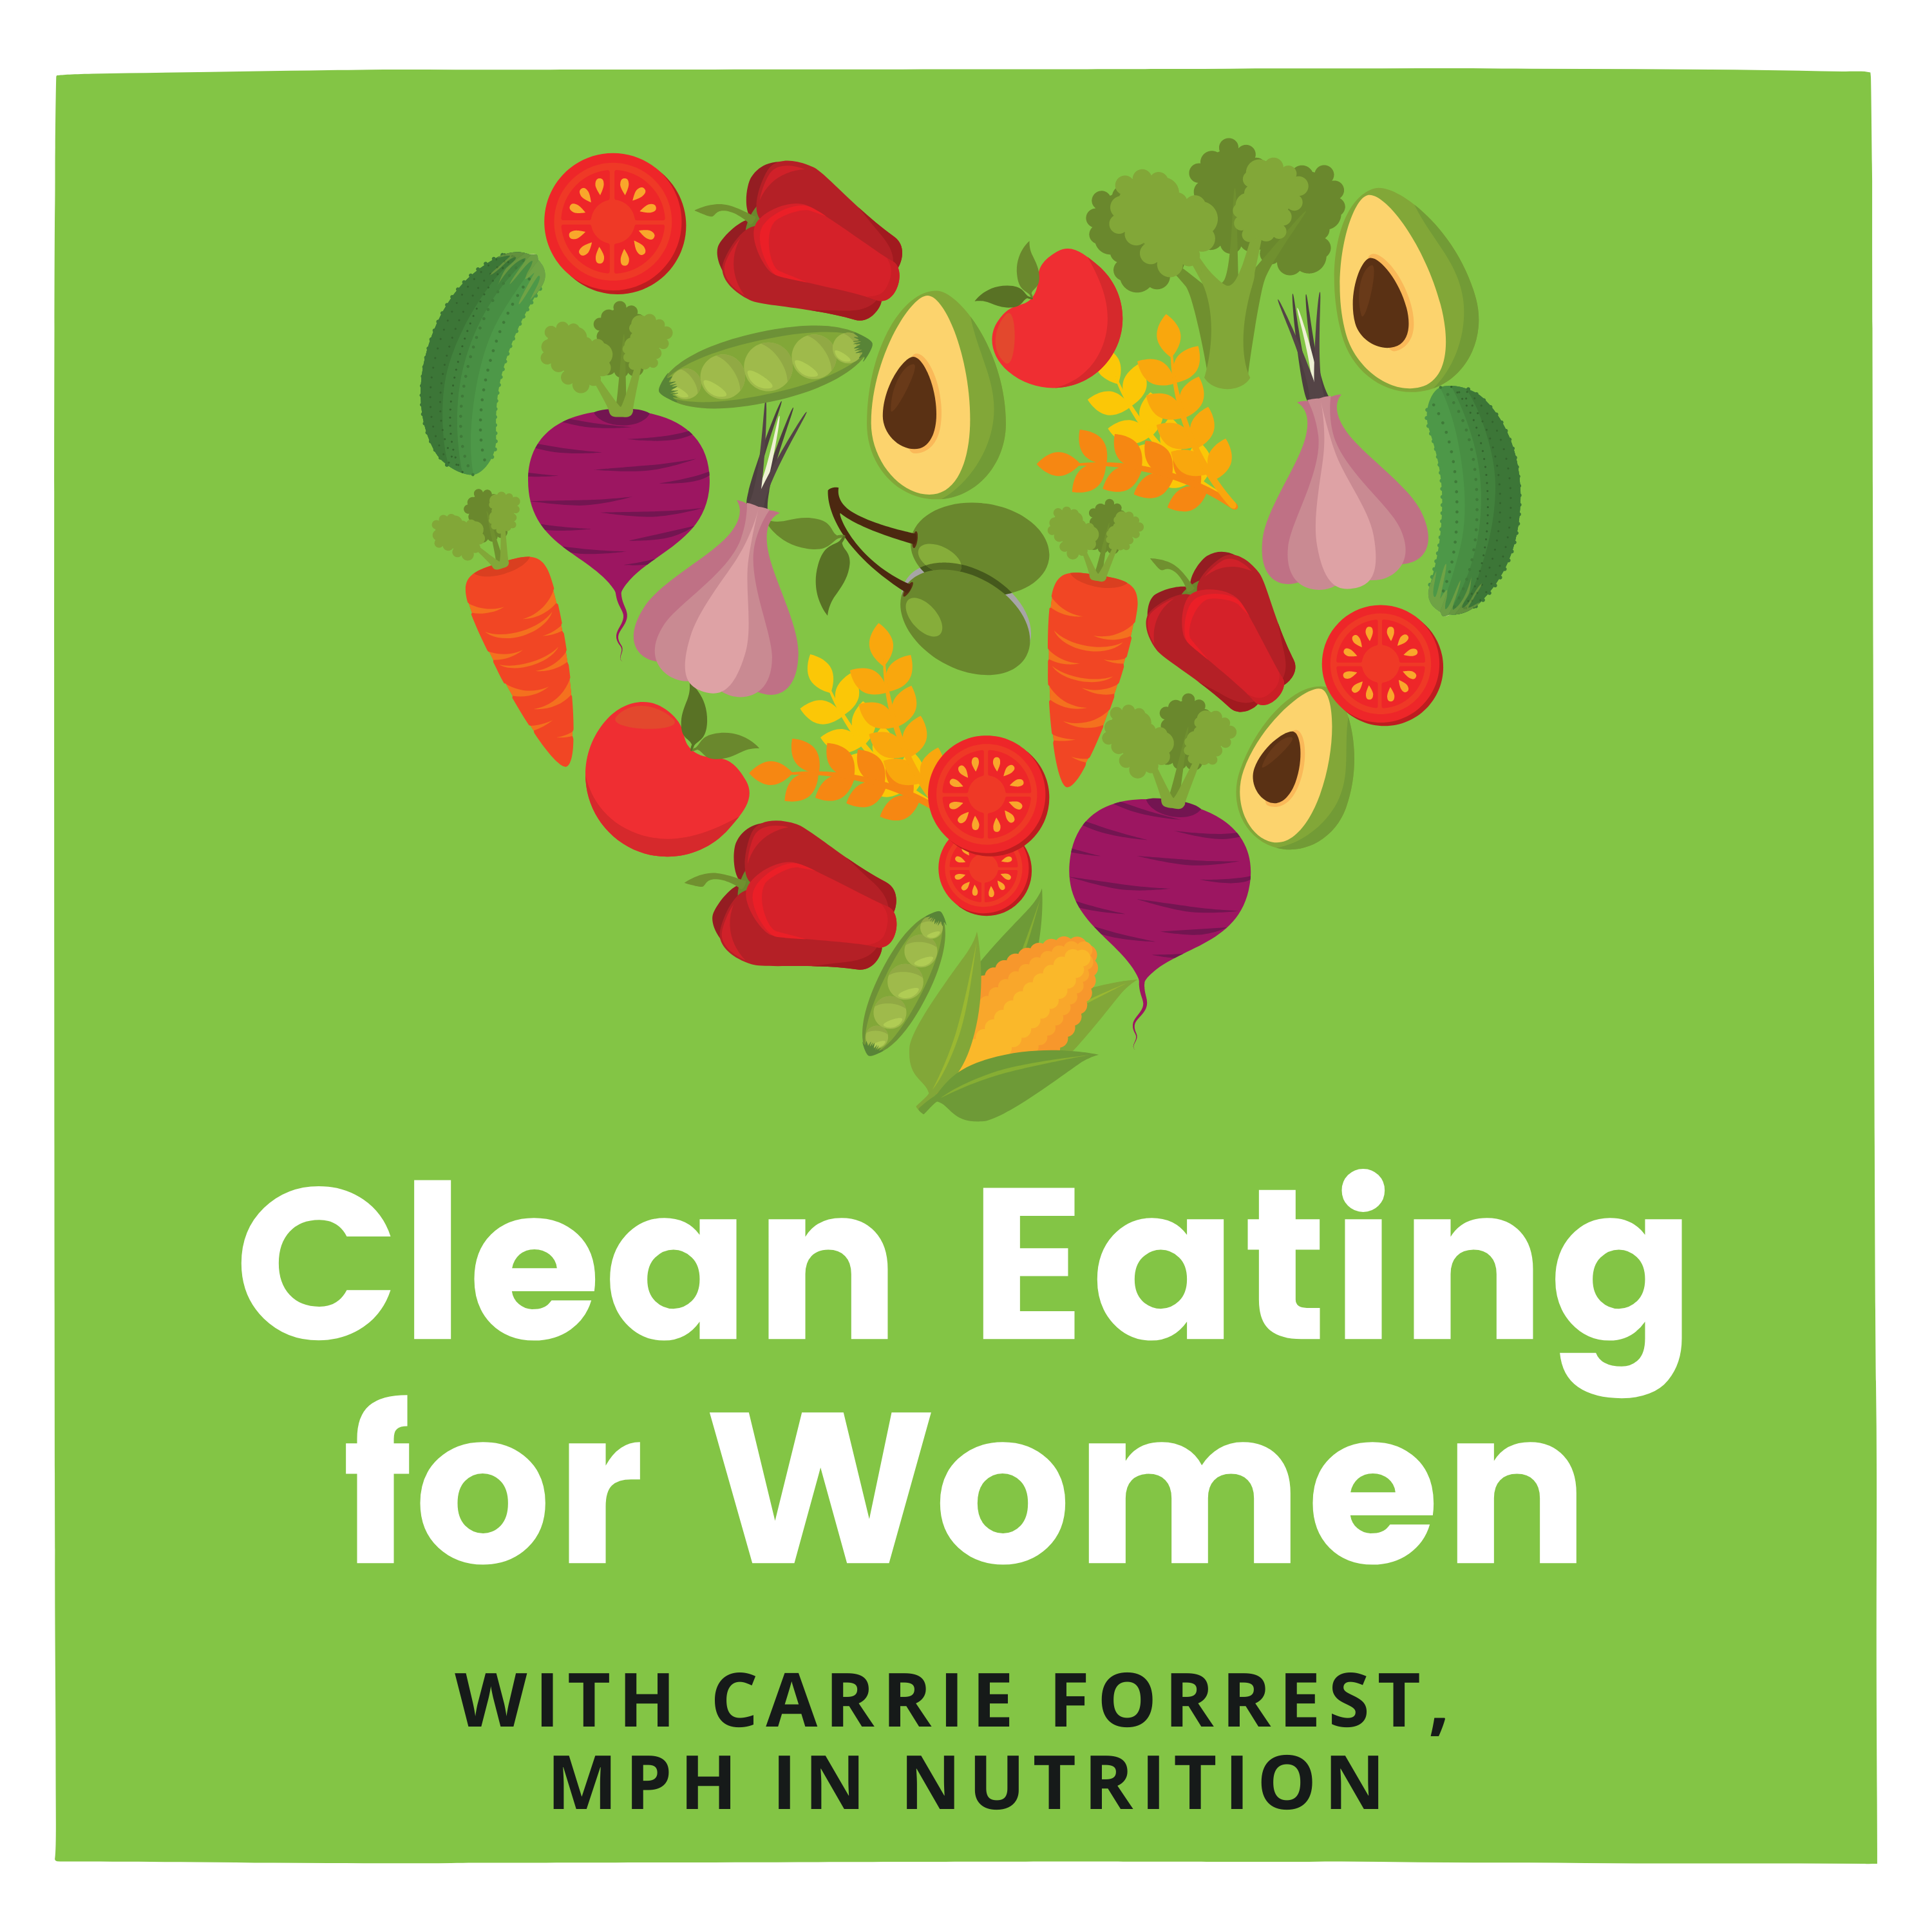 Clean Eating for Women with Carrie Forrest, MPH in Nutrition